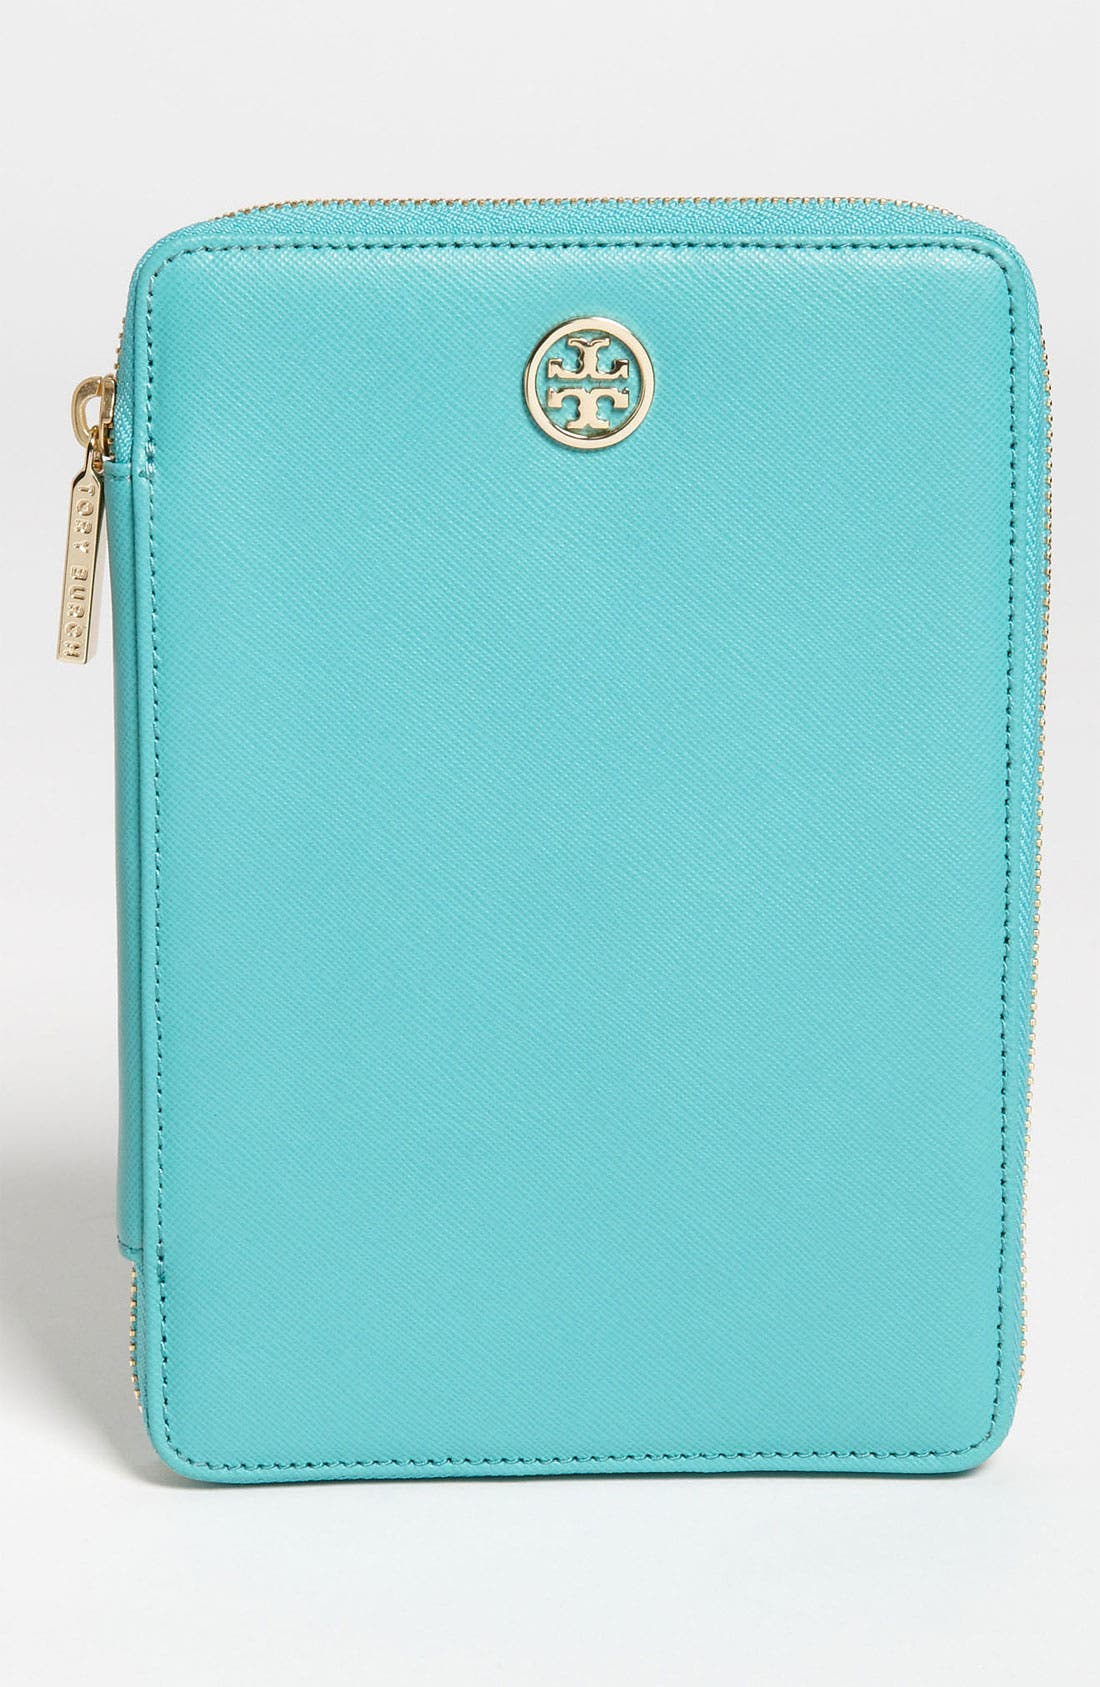 Alternate Image 1 Selected - Tory Burch 'Robinson' E-Reader Case